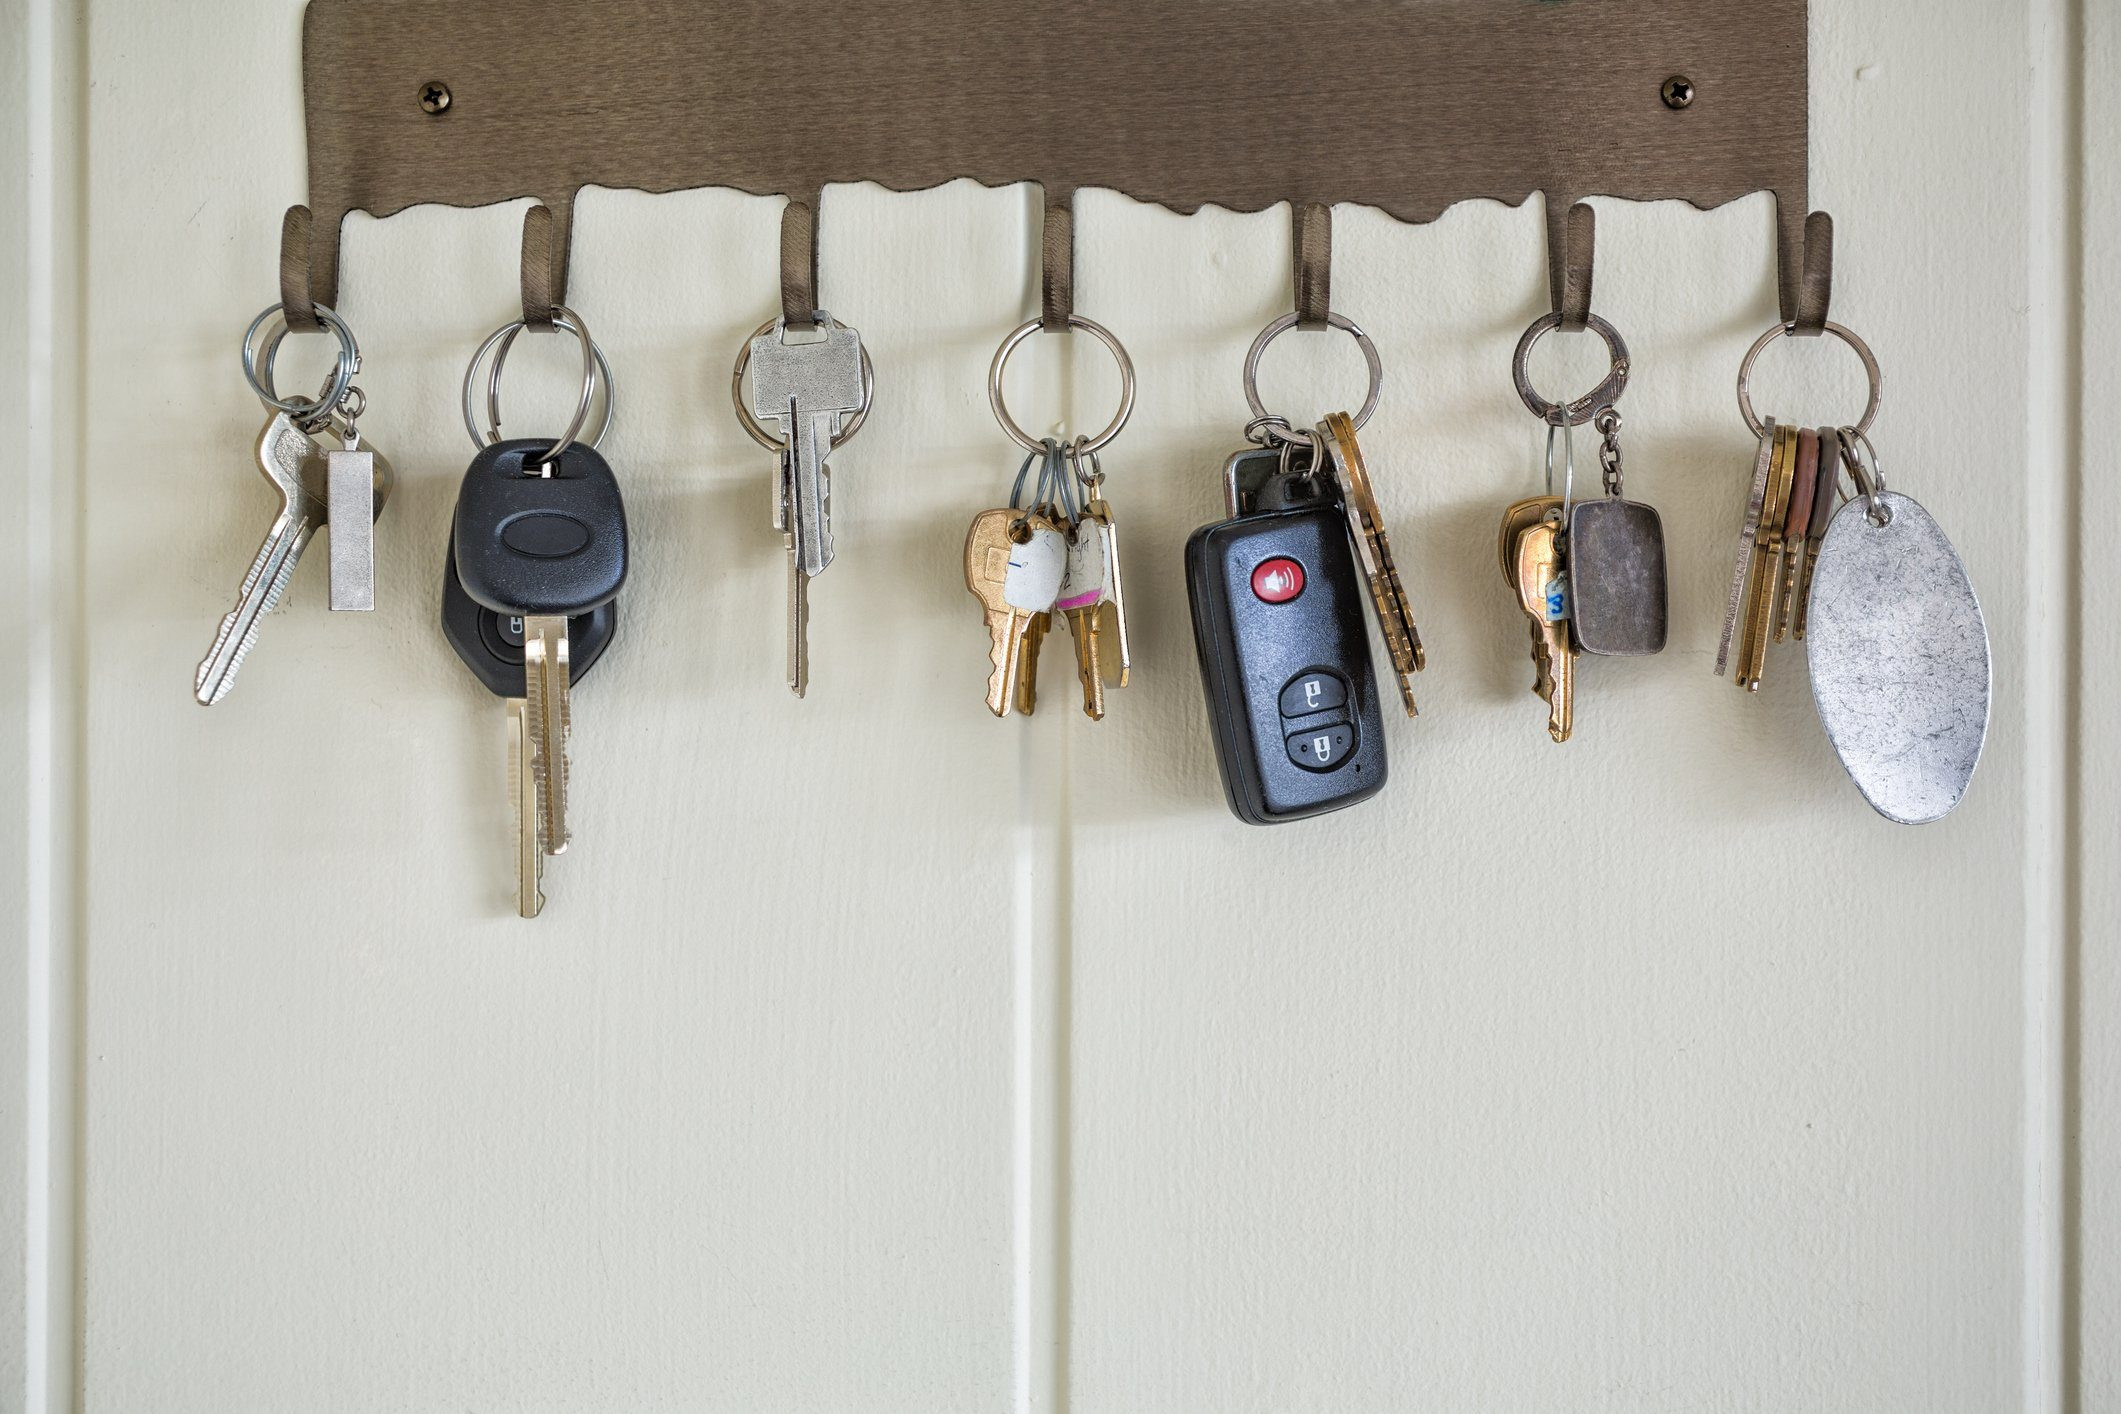 Several types of keys hanging on wall hooks